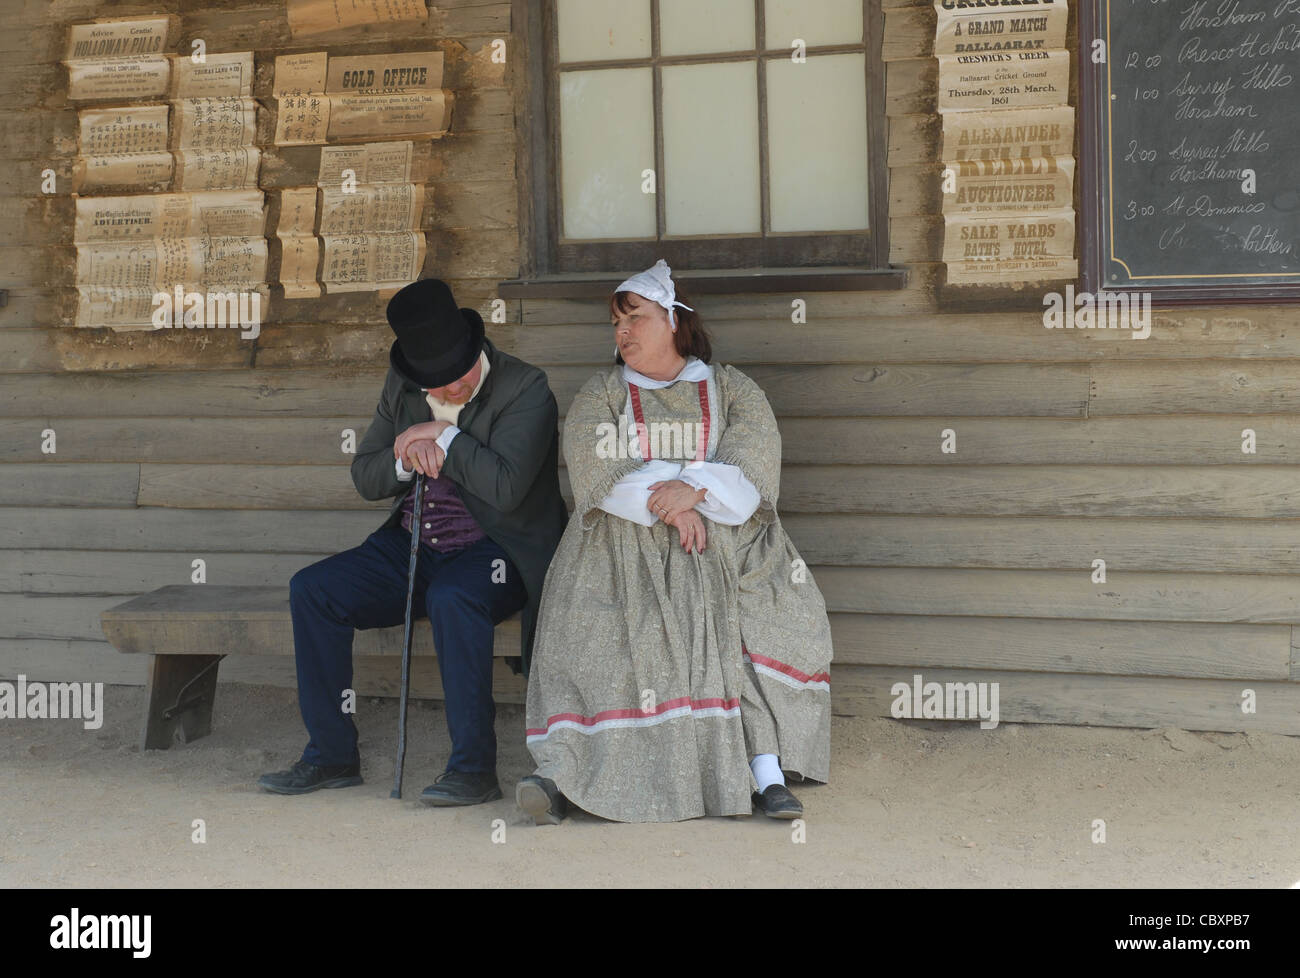 One of Australia's most popular attractions is the animated gold rush open-air museum of Sovereign Hill in Ballarat, - Stock Image